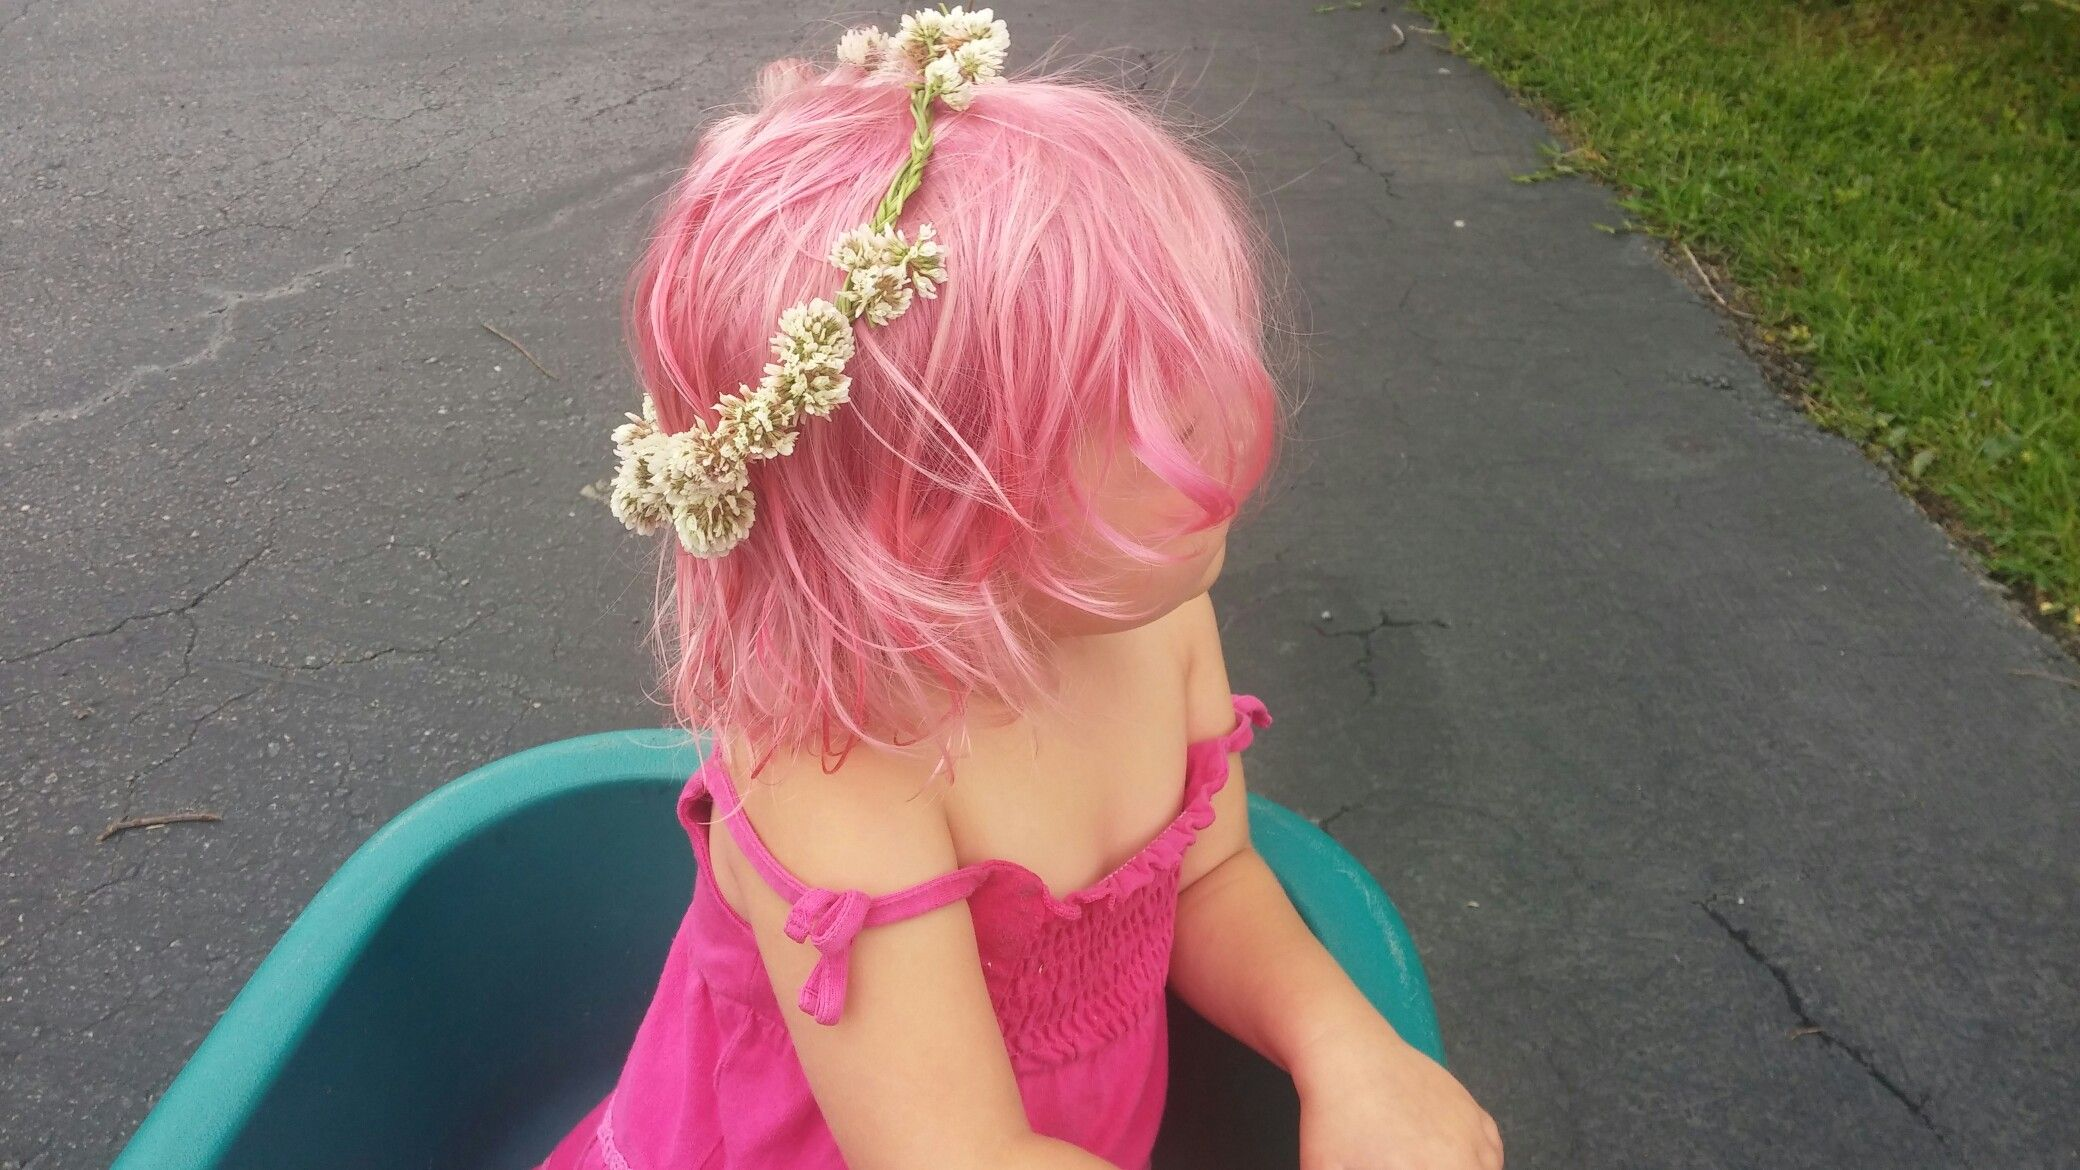 Food Coloring Conditioner Makes Temporary Hair Dye For